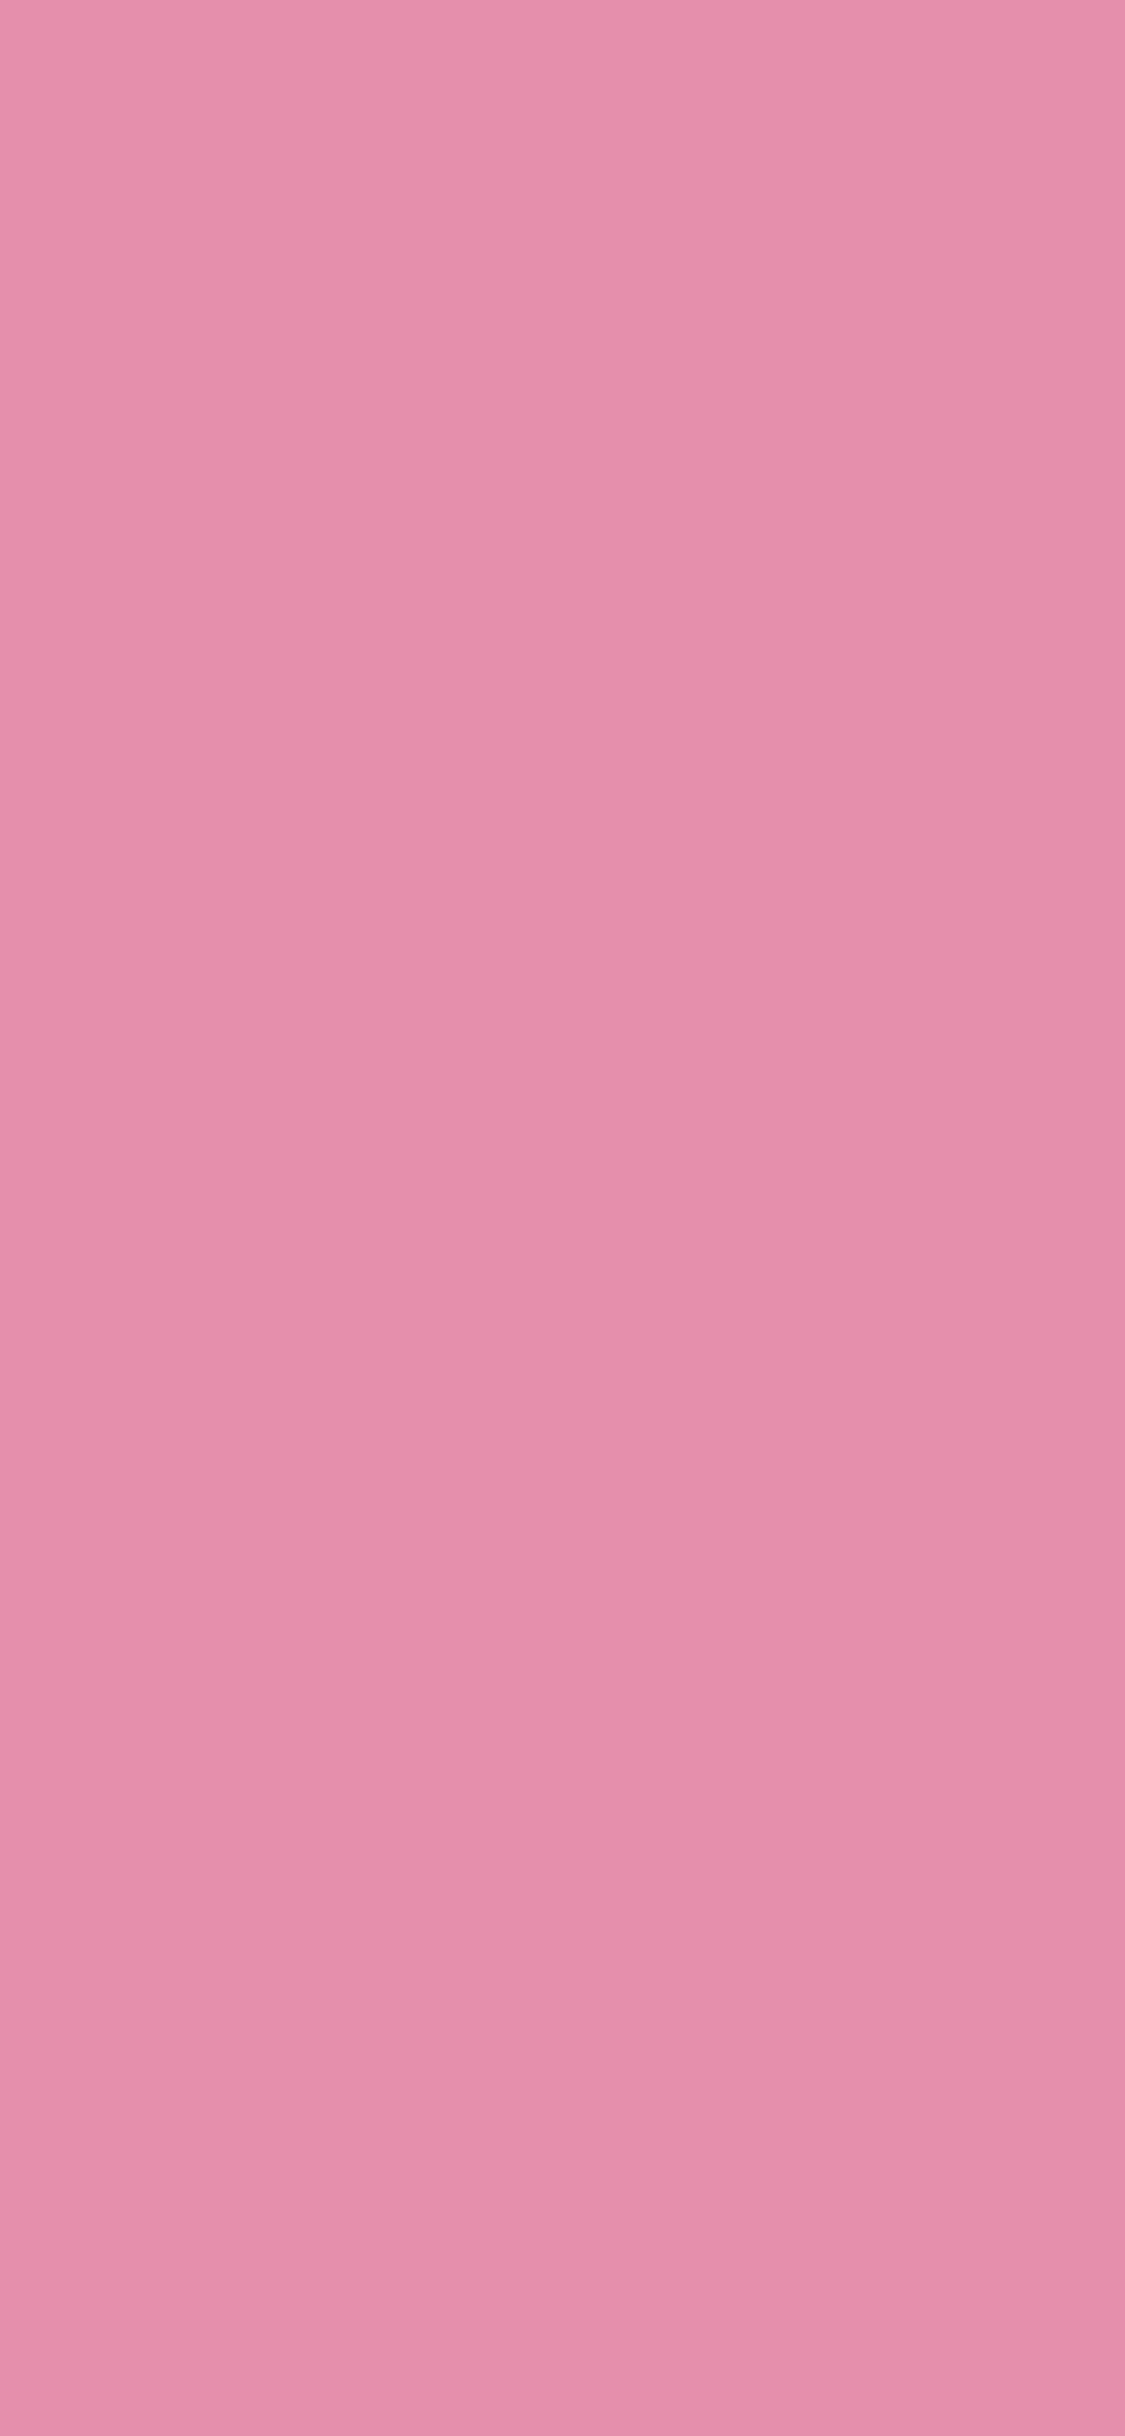 1125x2436 Charm Pink Solid Color Background